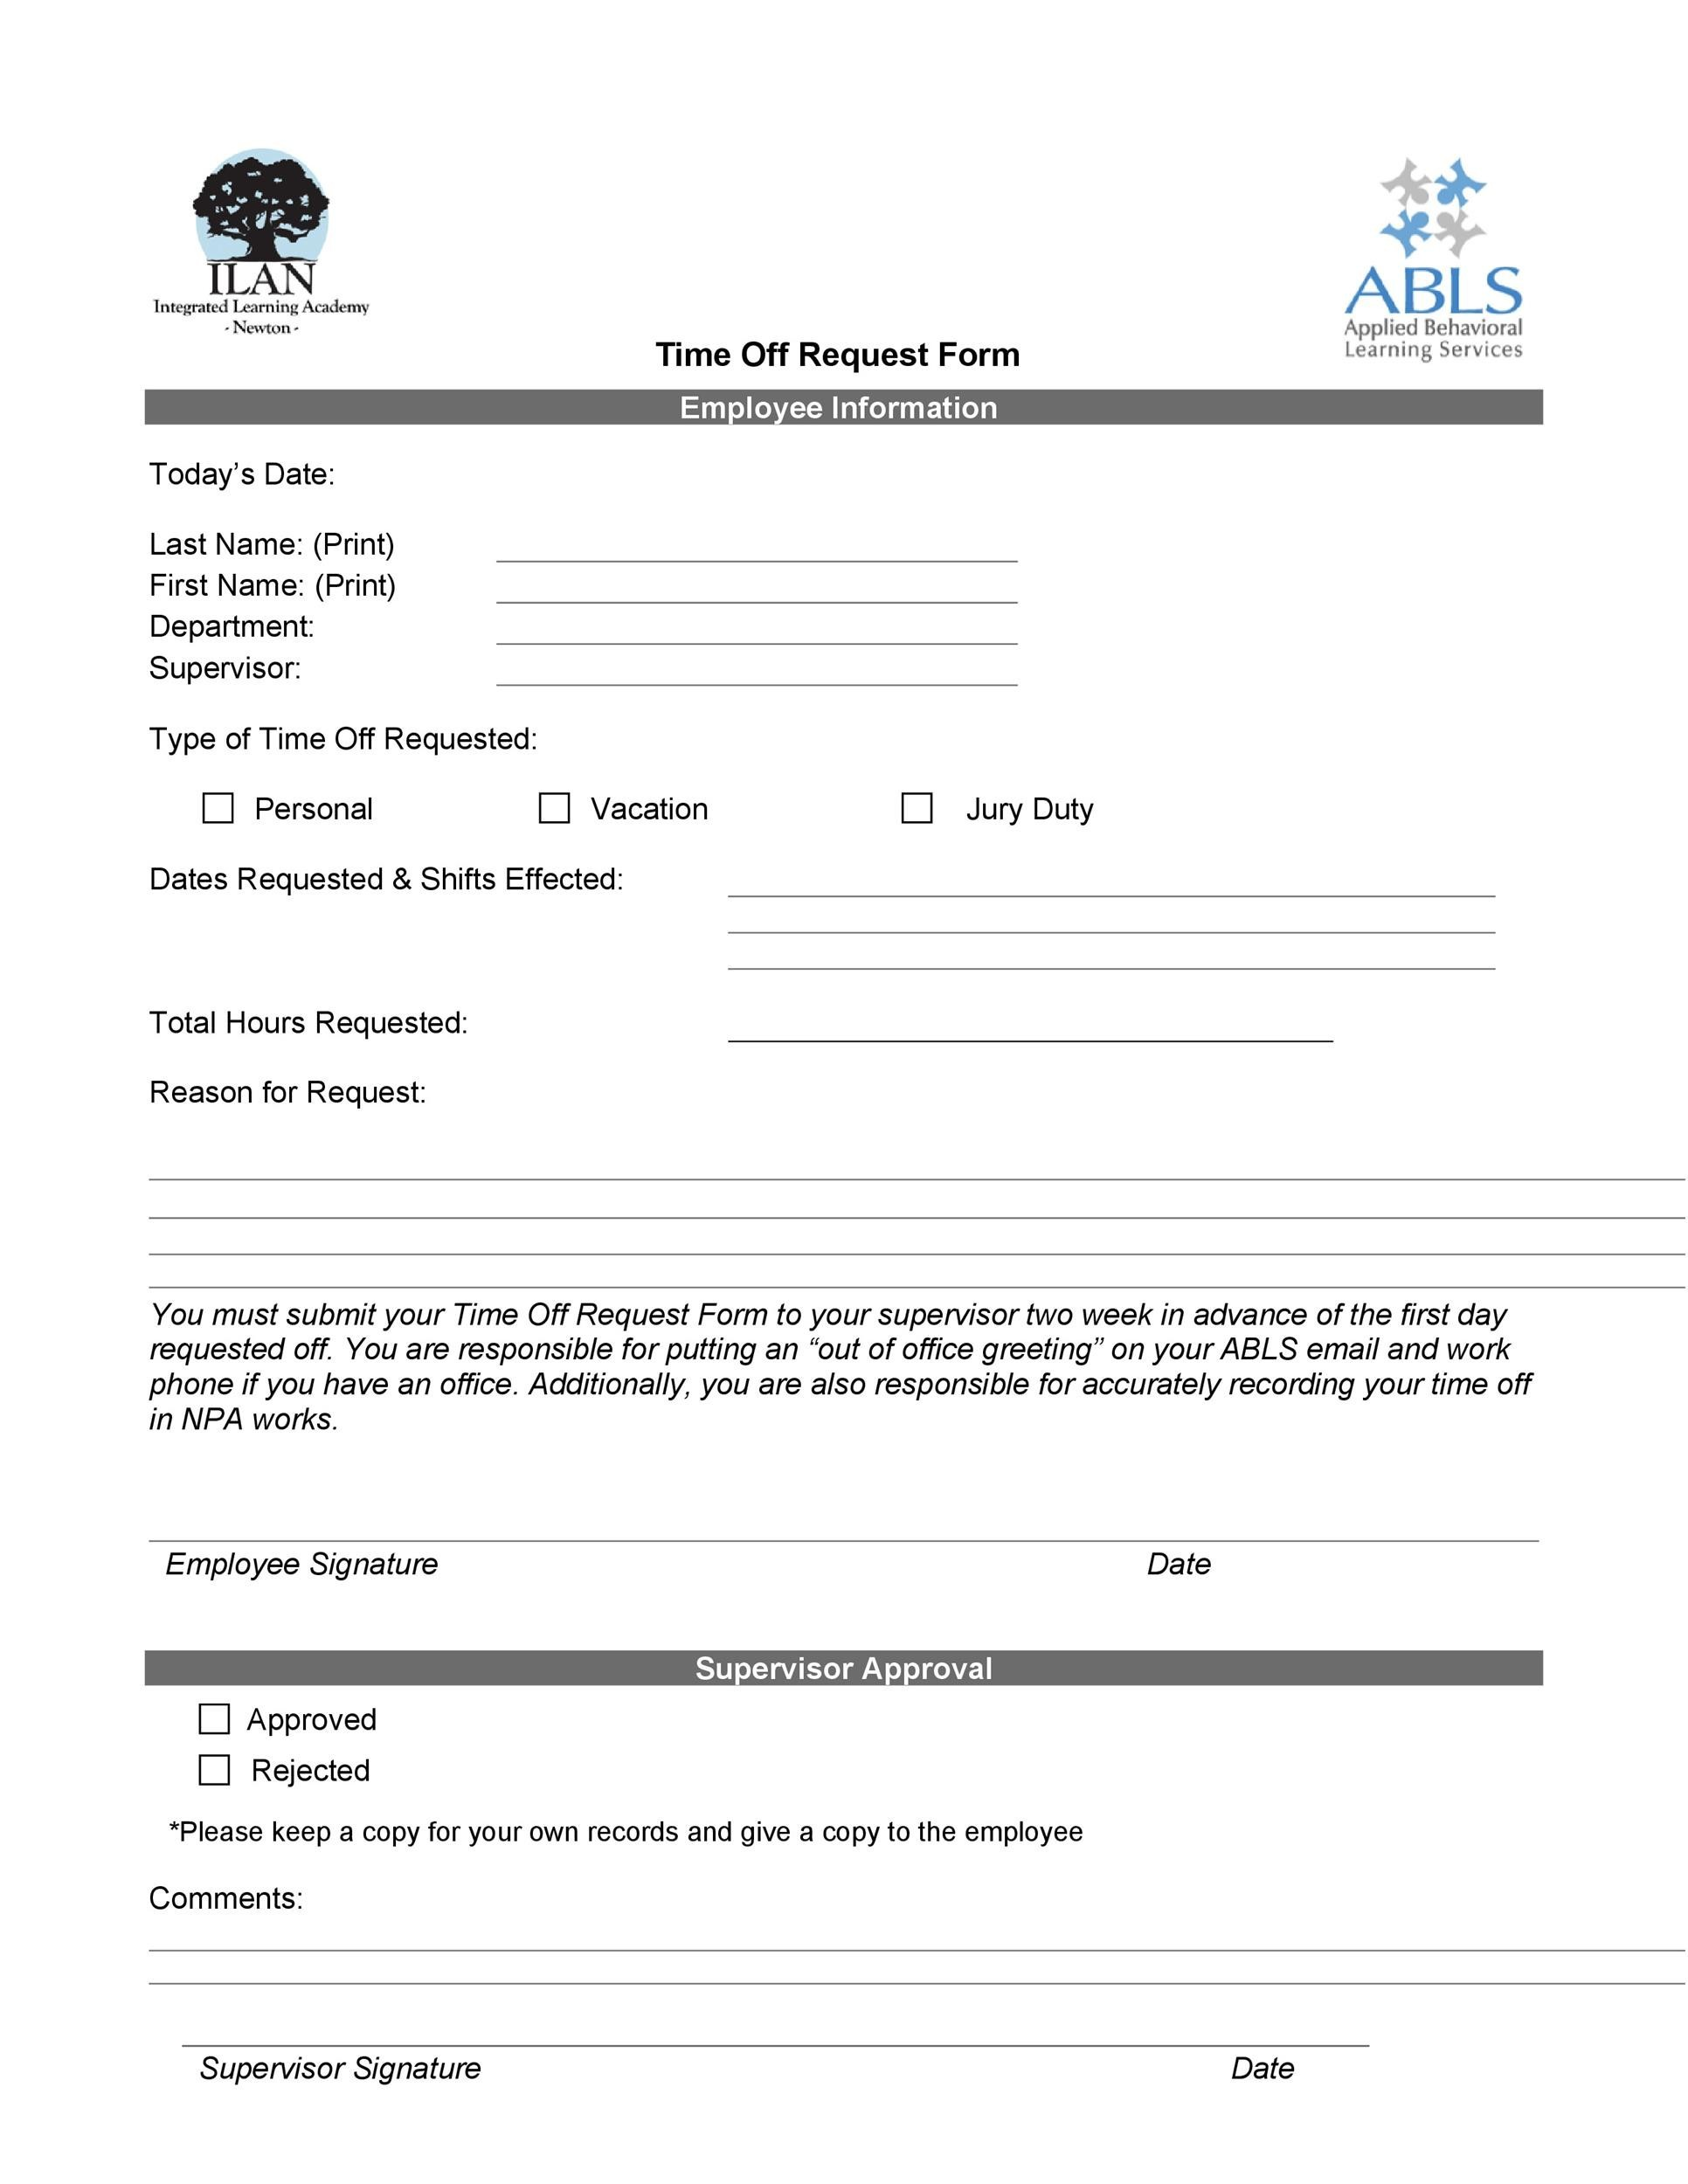 Off Request Form Template Time Letter Sample And Vacation Forms .